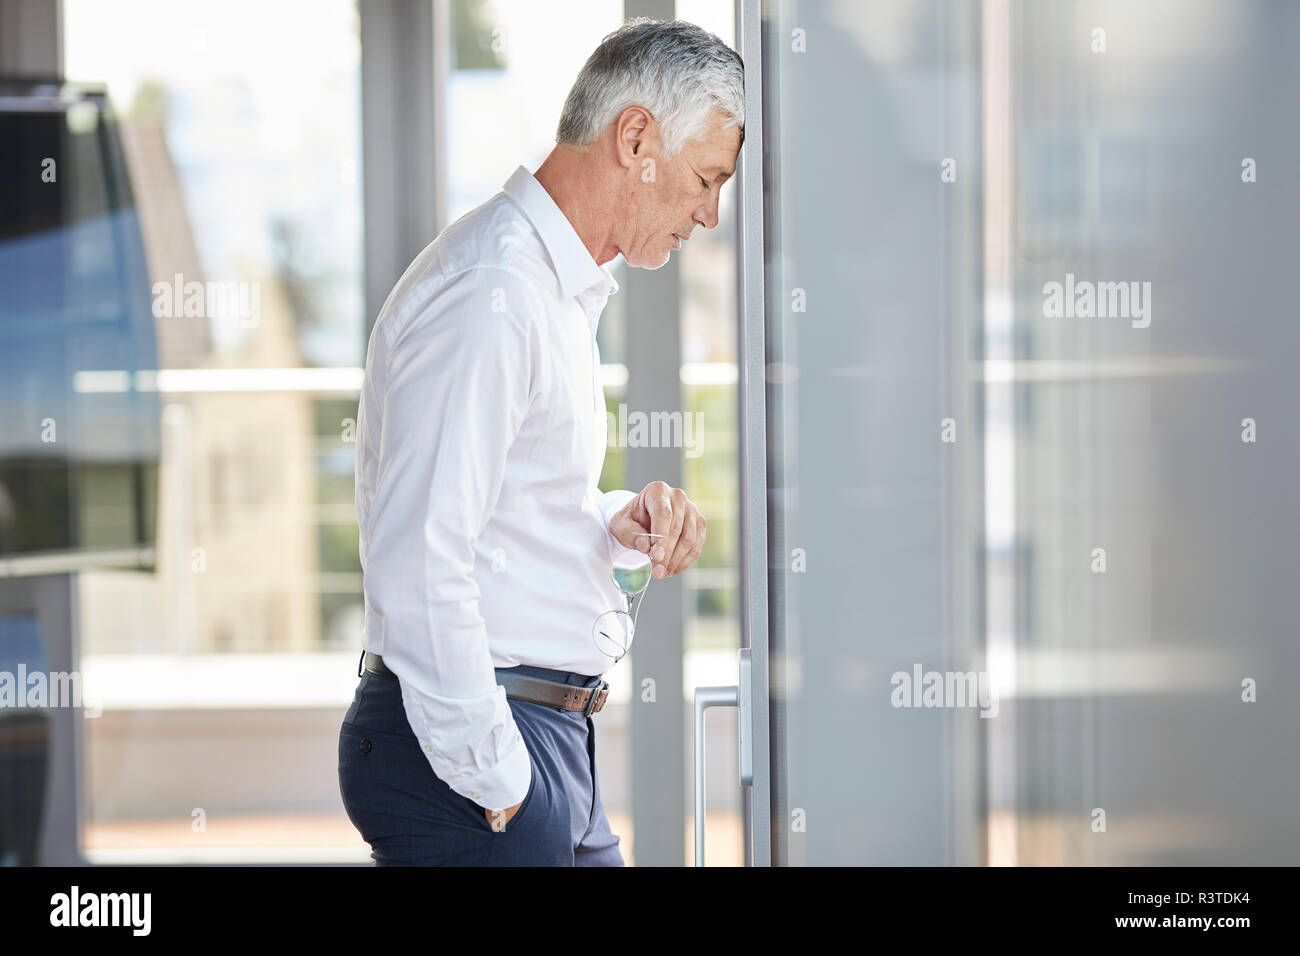 Exhausted businessman resting head on windowpane - Stock Image